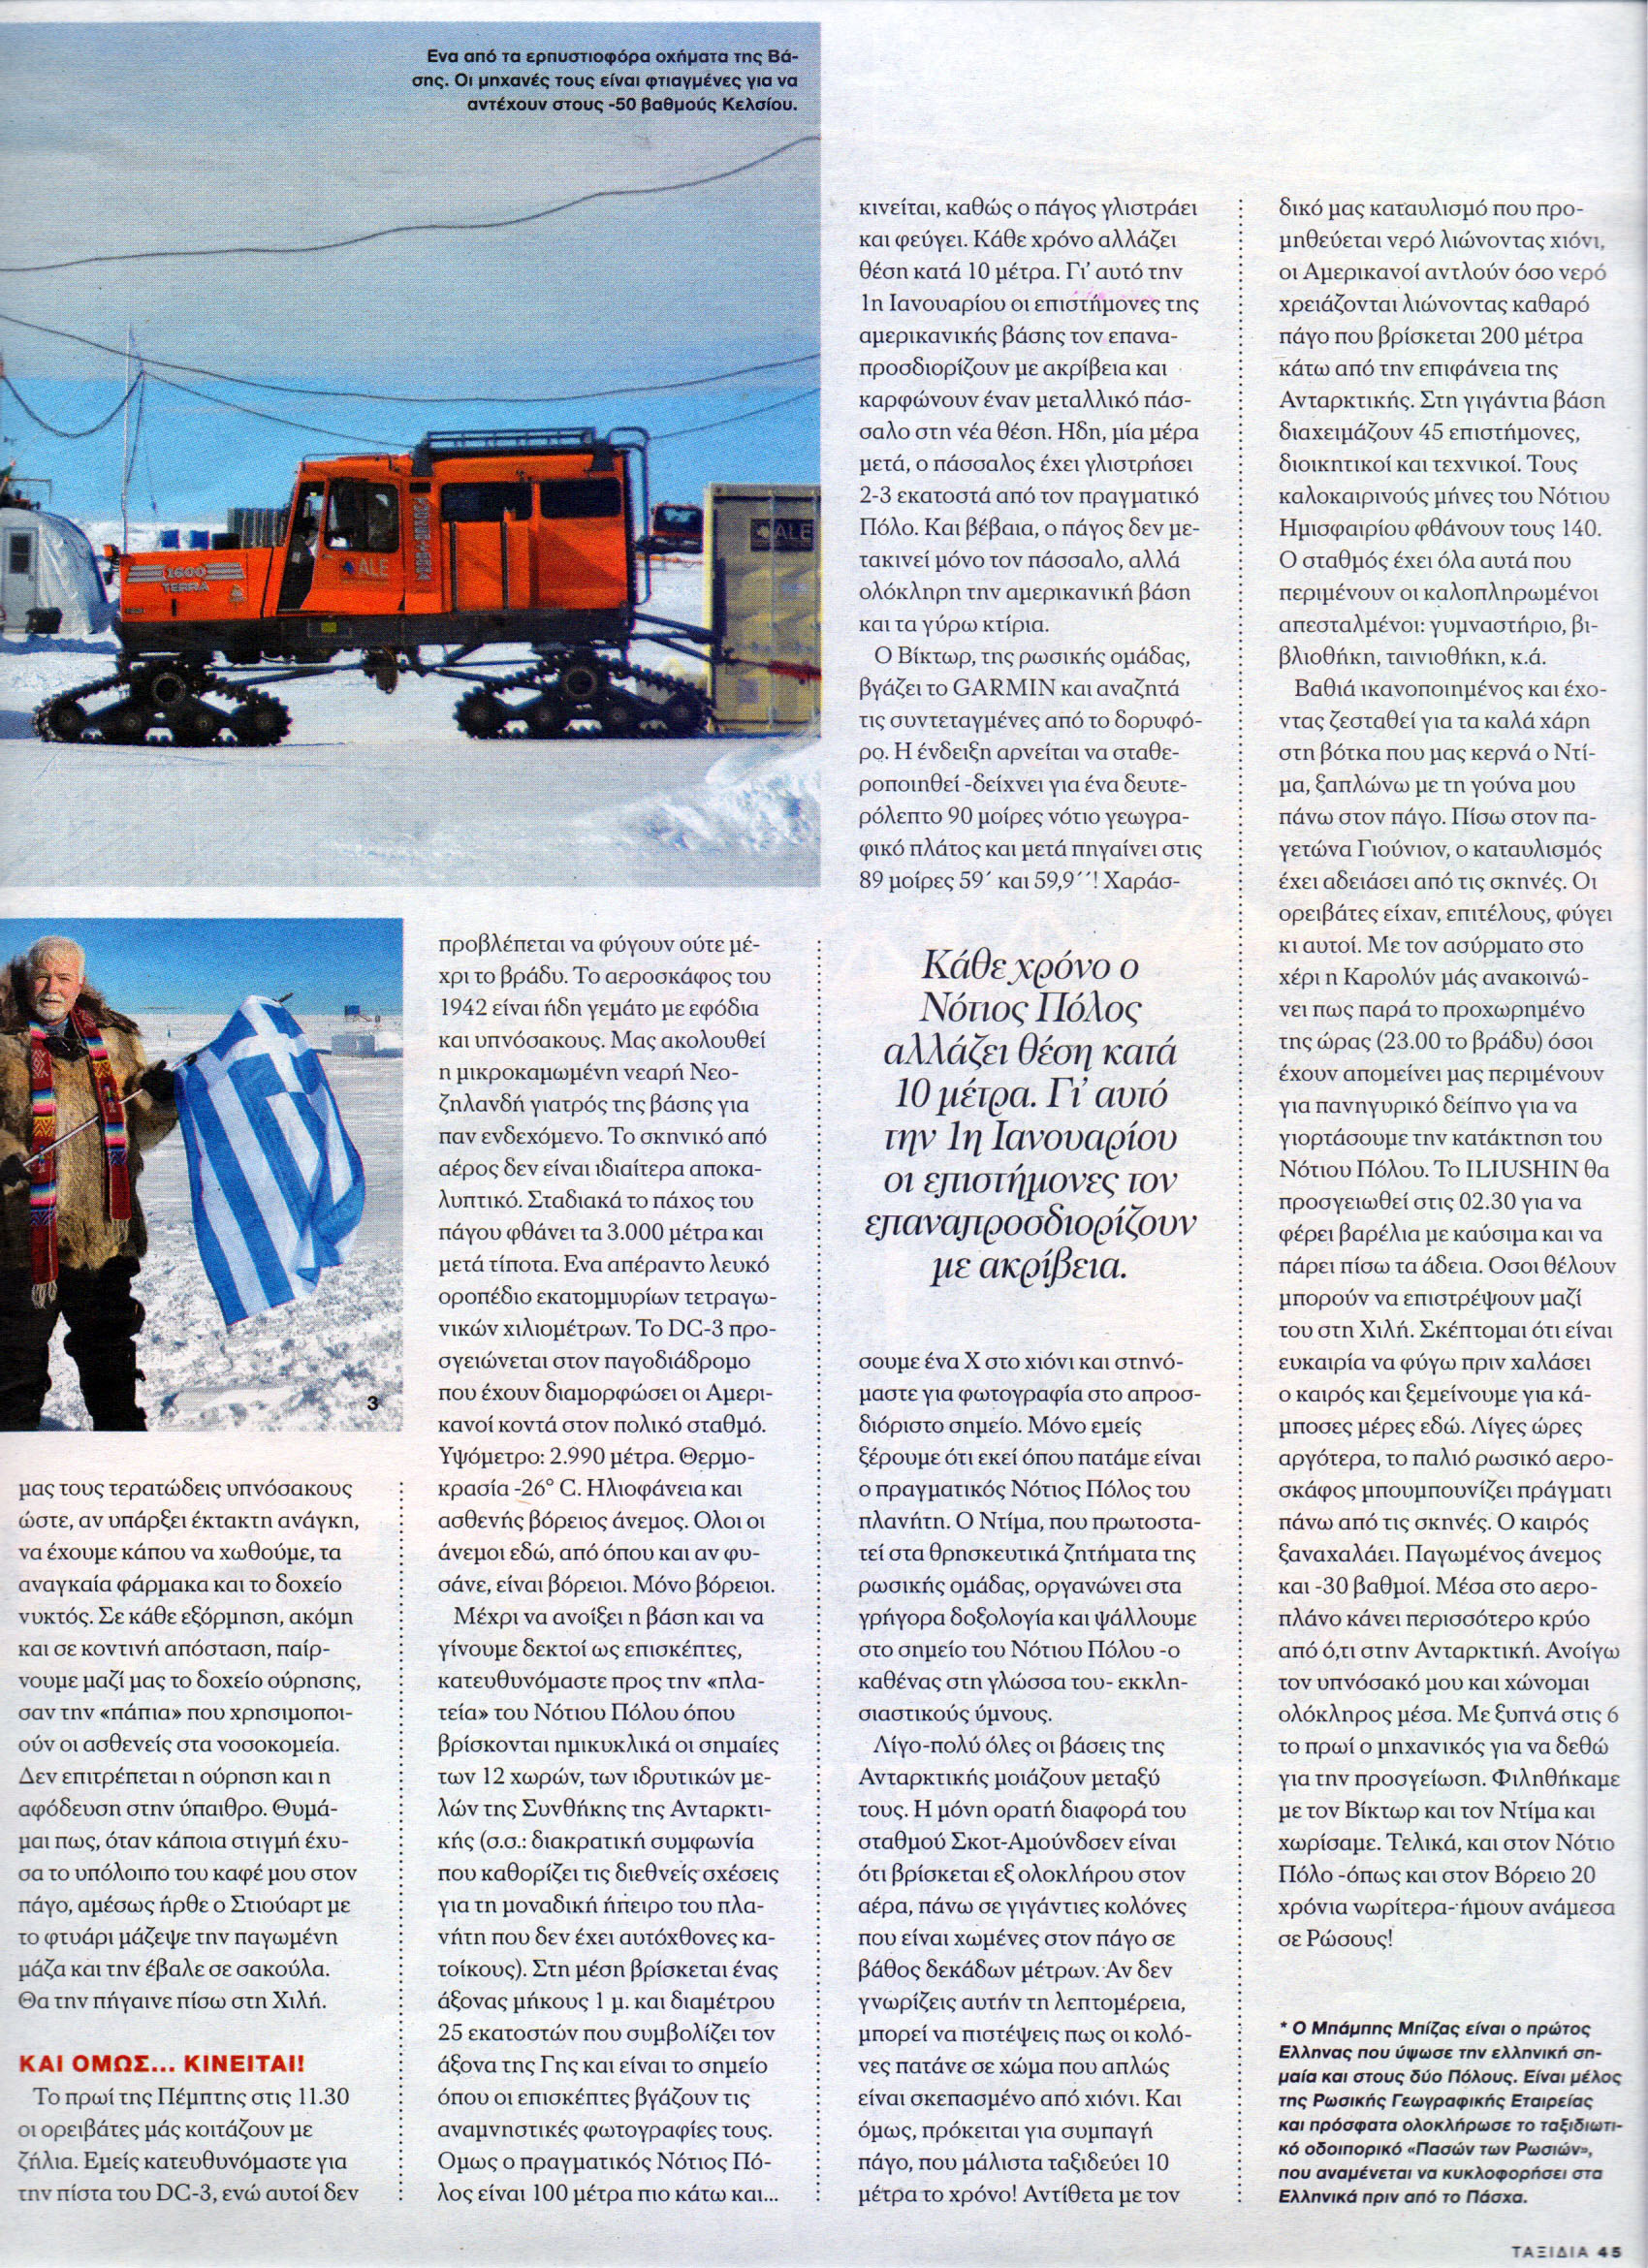 Kathimerini South Pole 2016